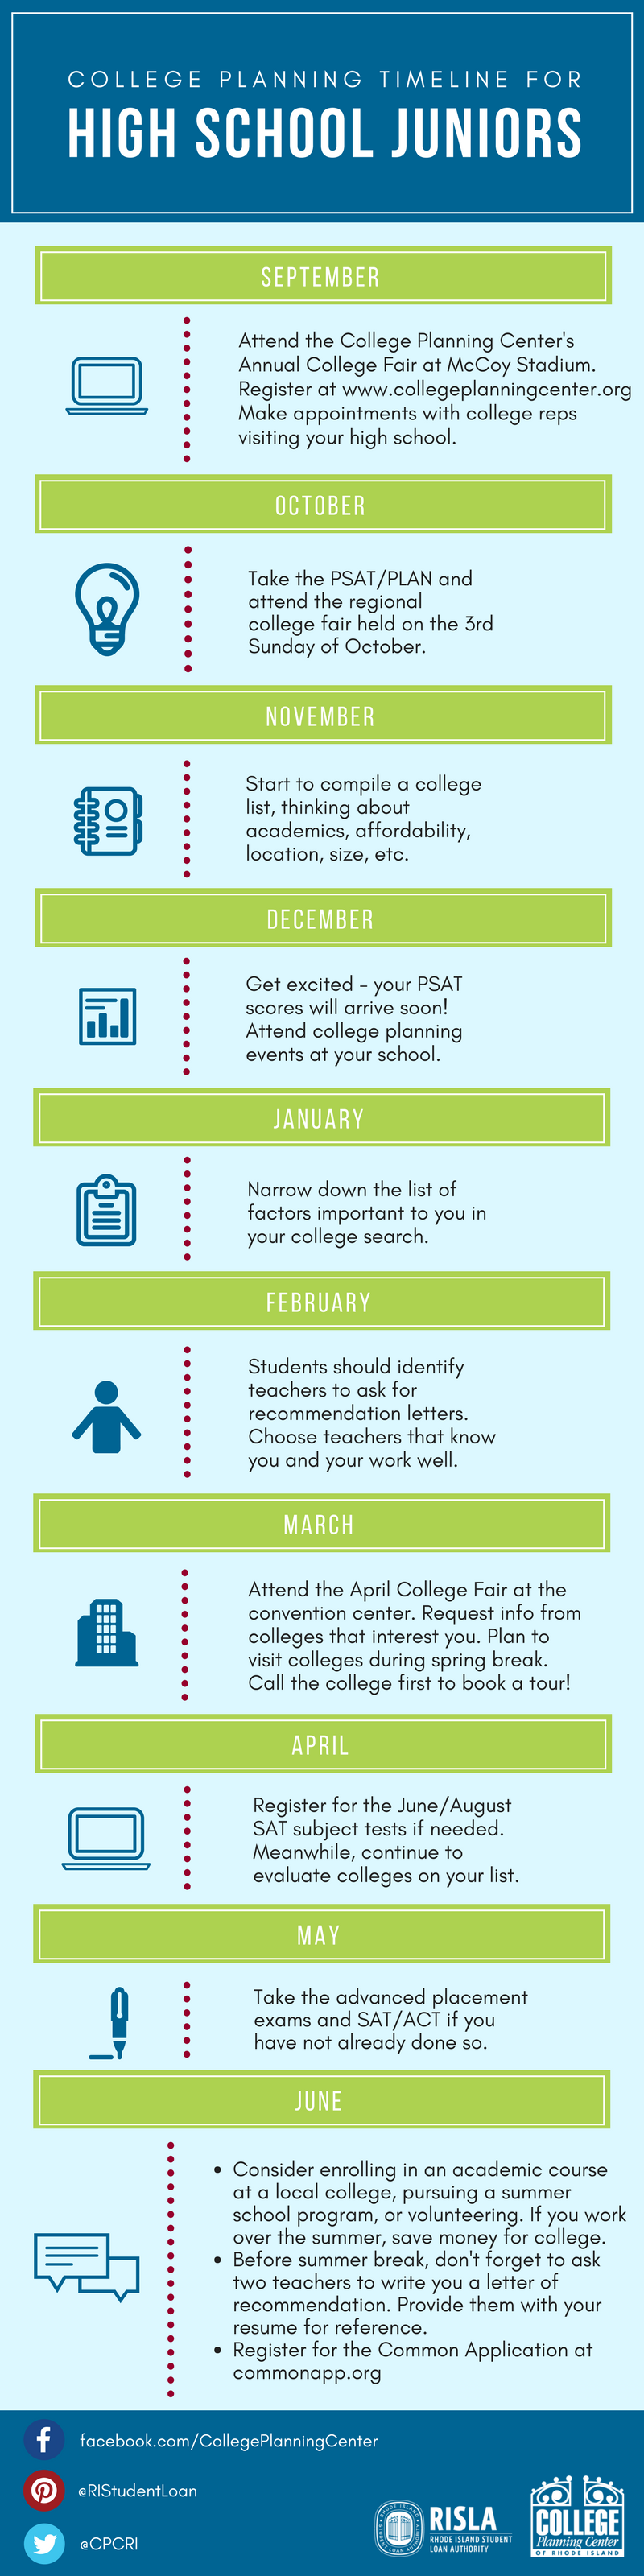 College planning timeline for high school juniors